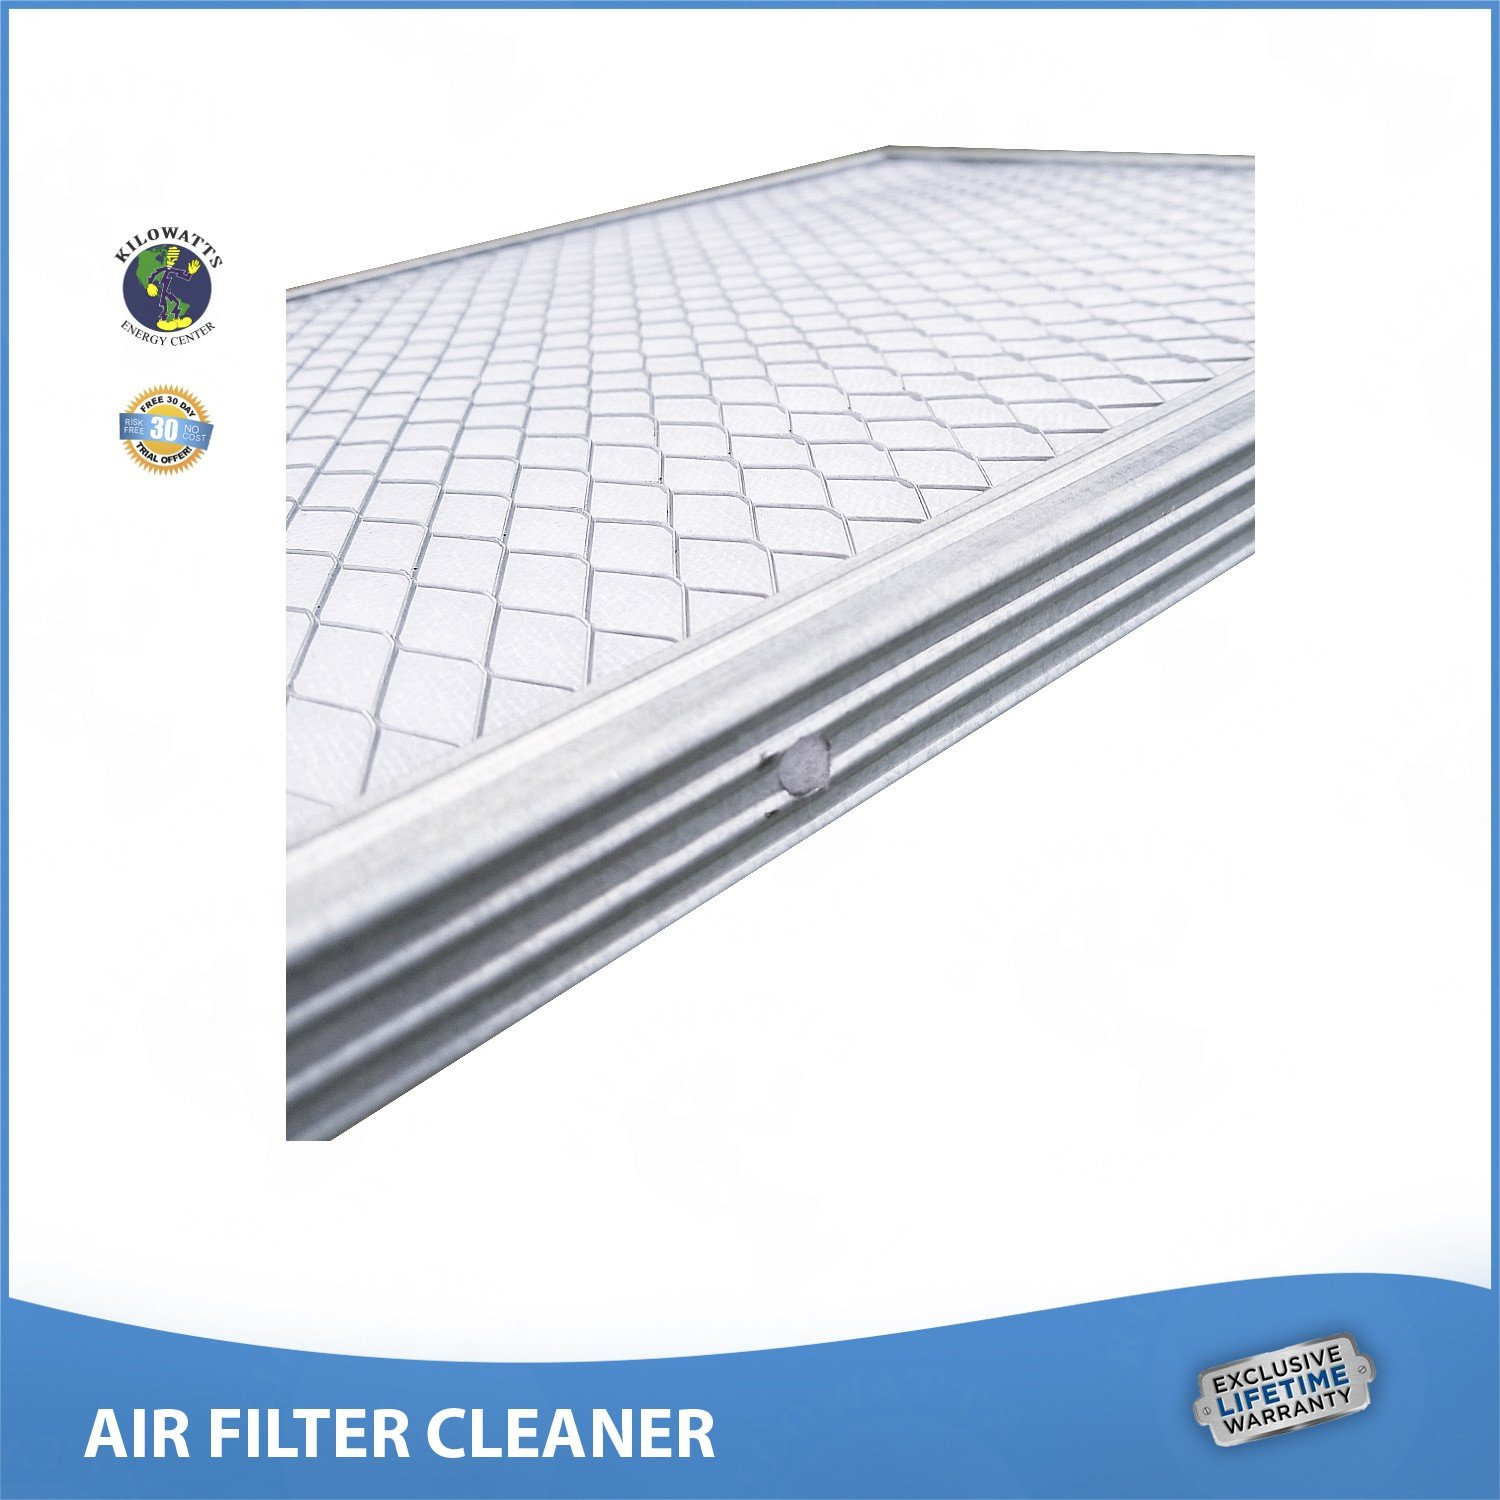 14x25x1 Lifetime Air Filter - Electrostatic Washable Permanent A/C Silver Steel Frame 65% more efficiency by Kilowatts Energy Center (Image #3)